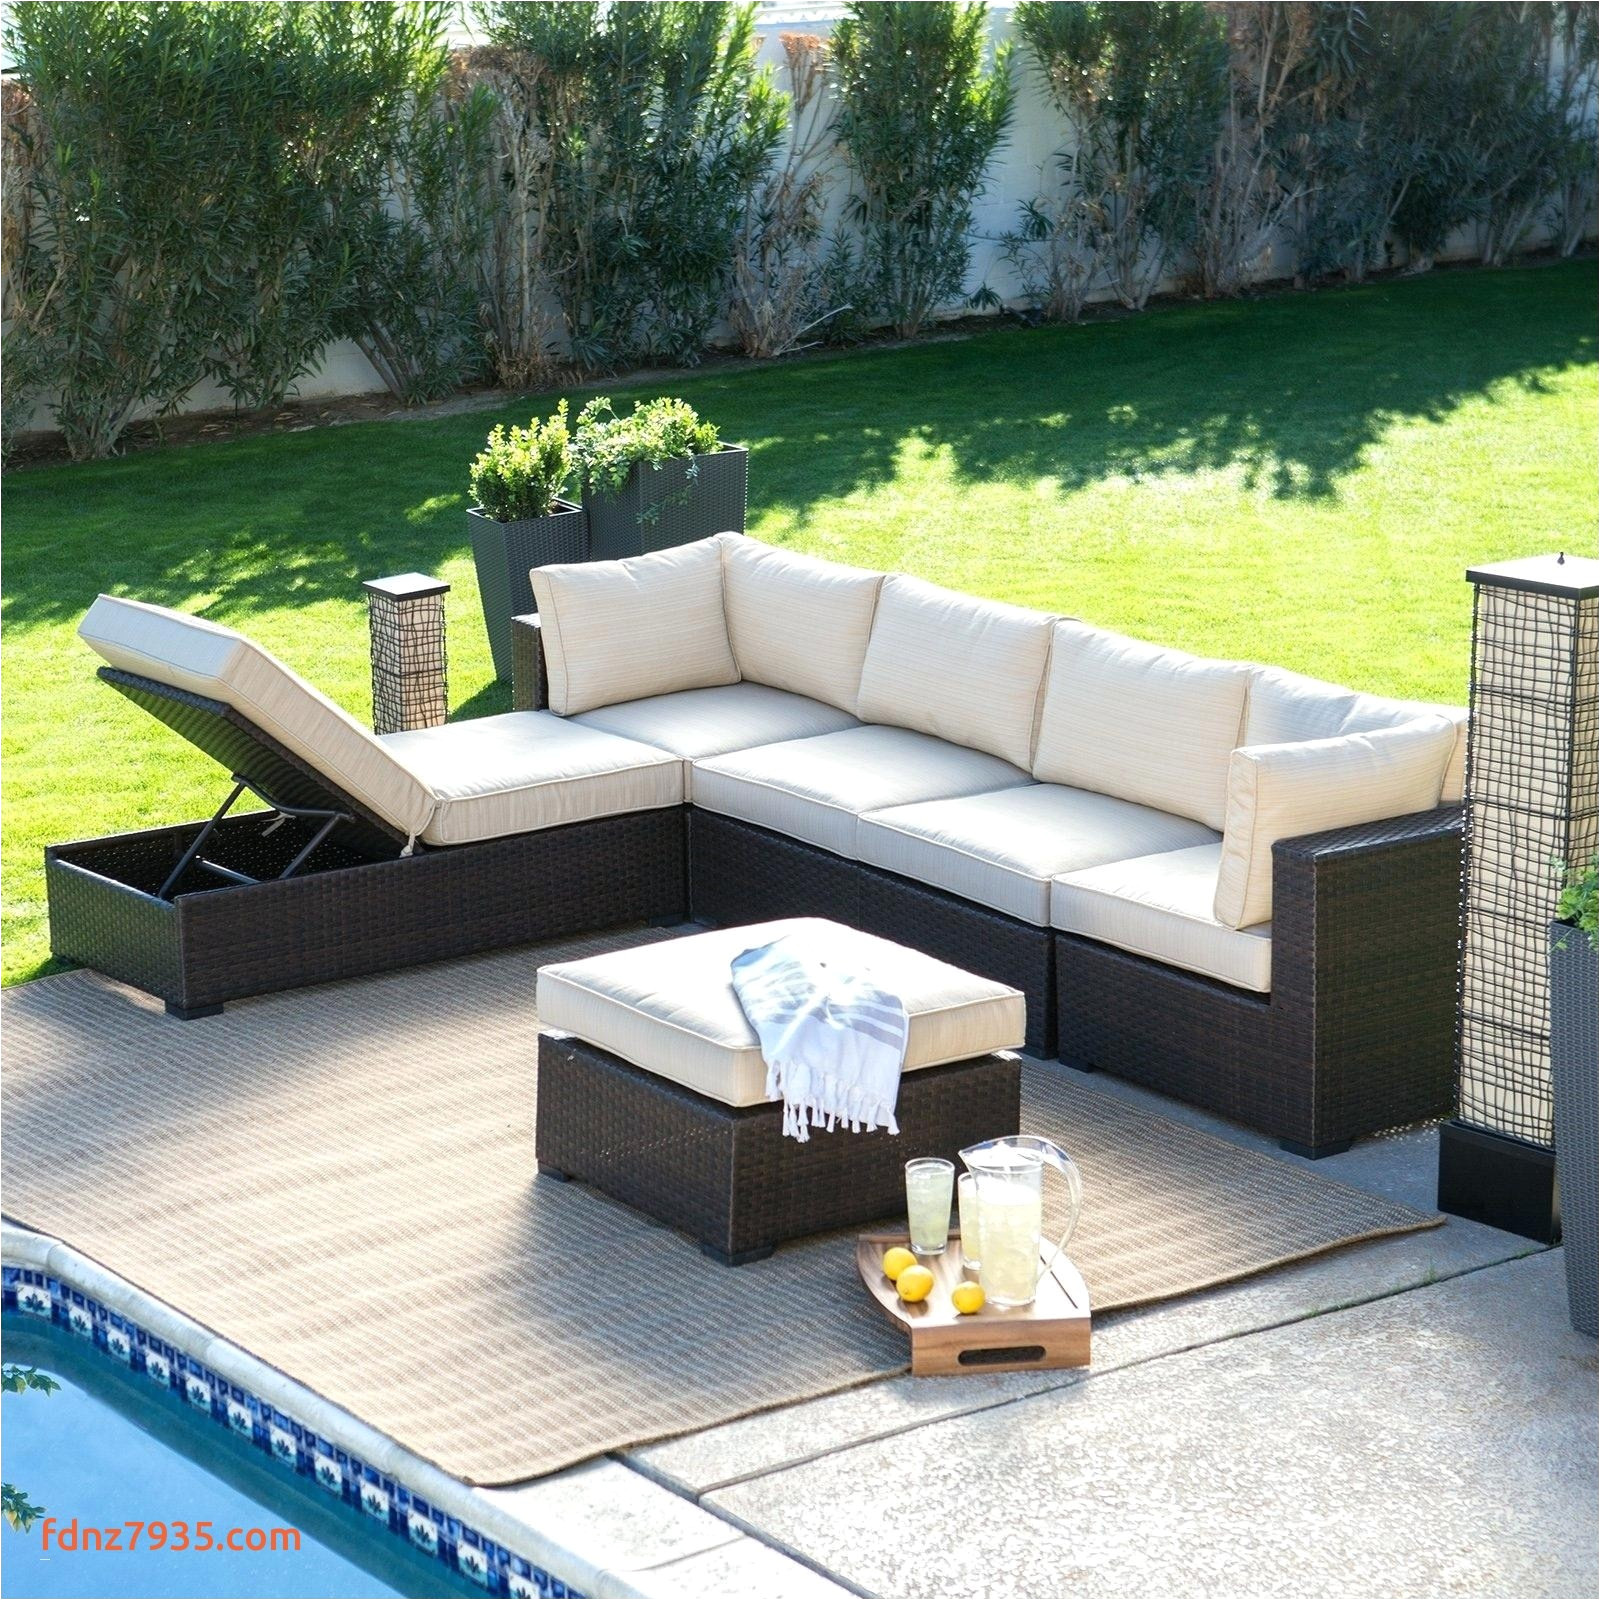 outdoor patio furniture covers inspirational patio furniture covers sale new wicker outdoor sofa 0d patio chairs